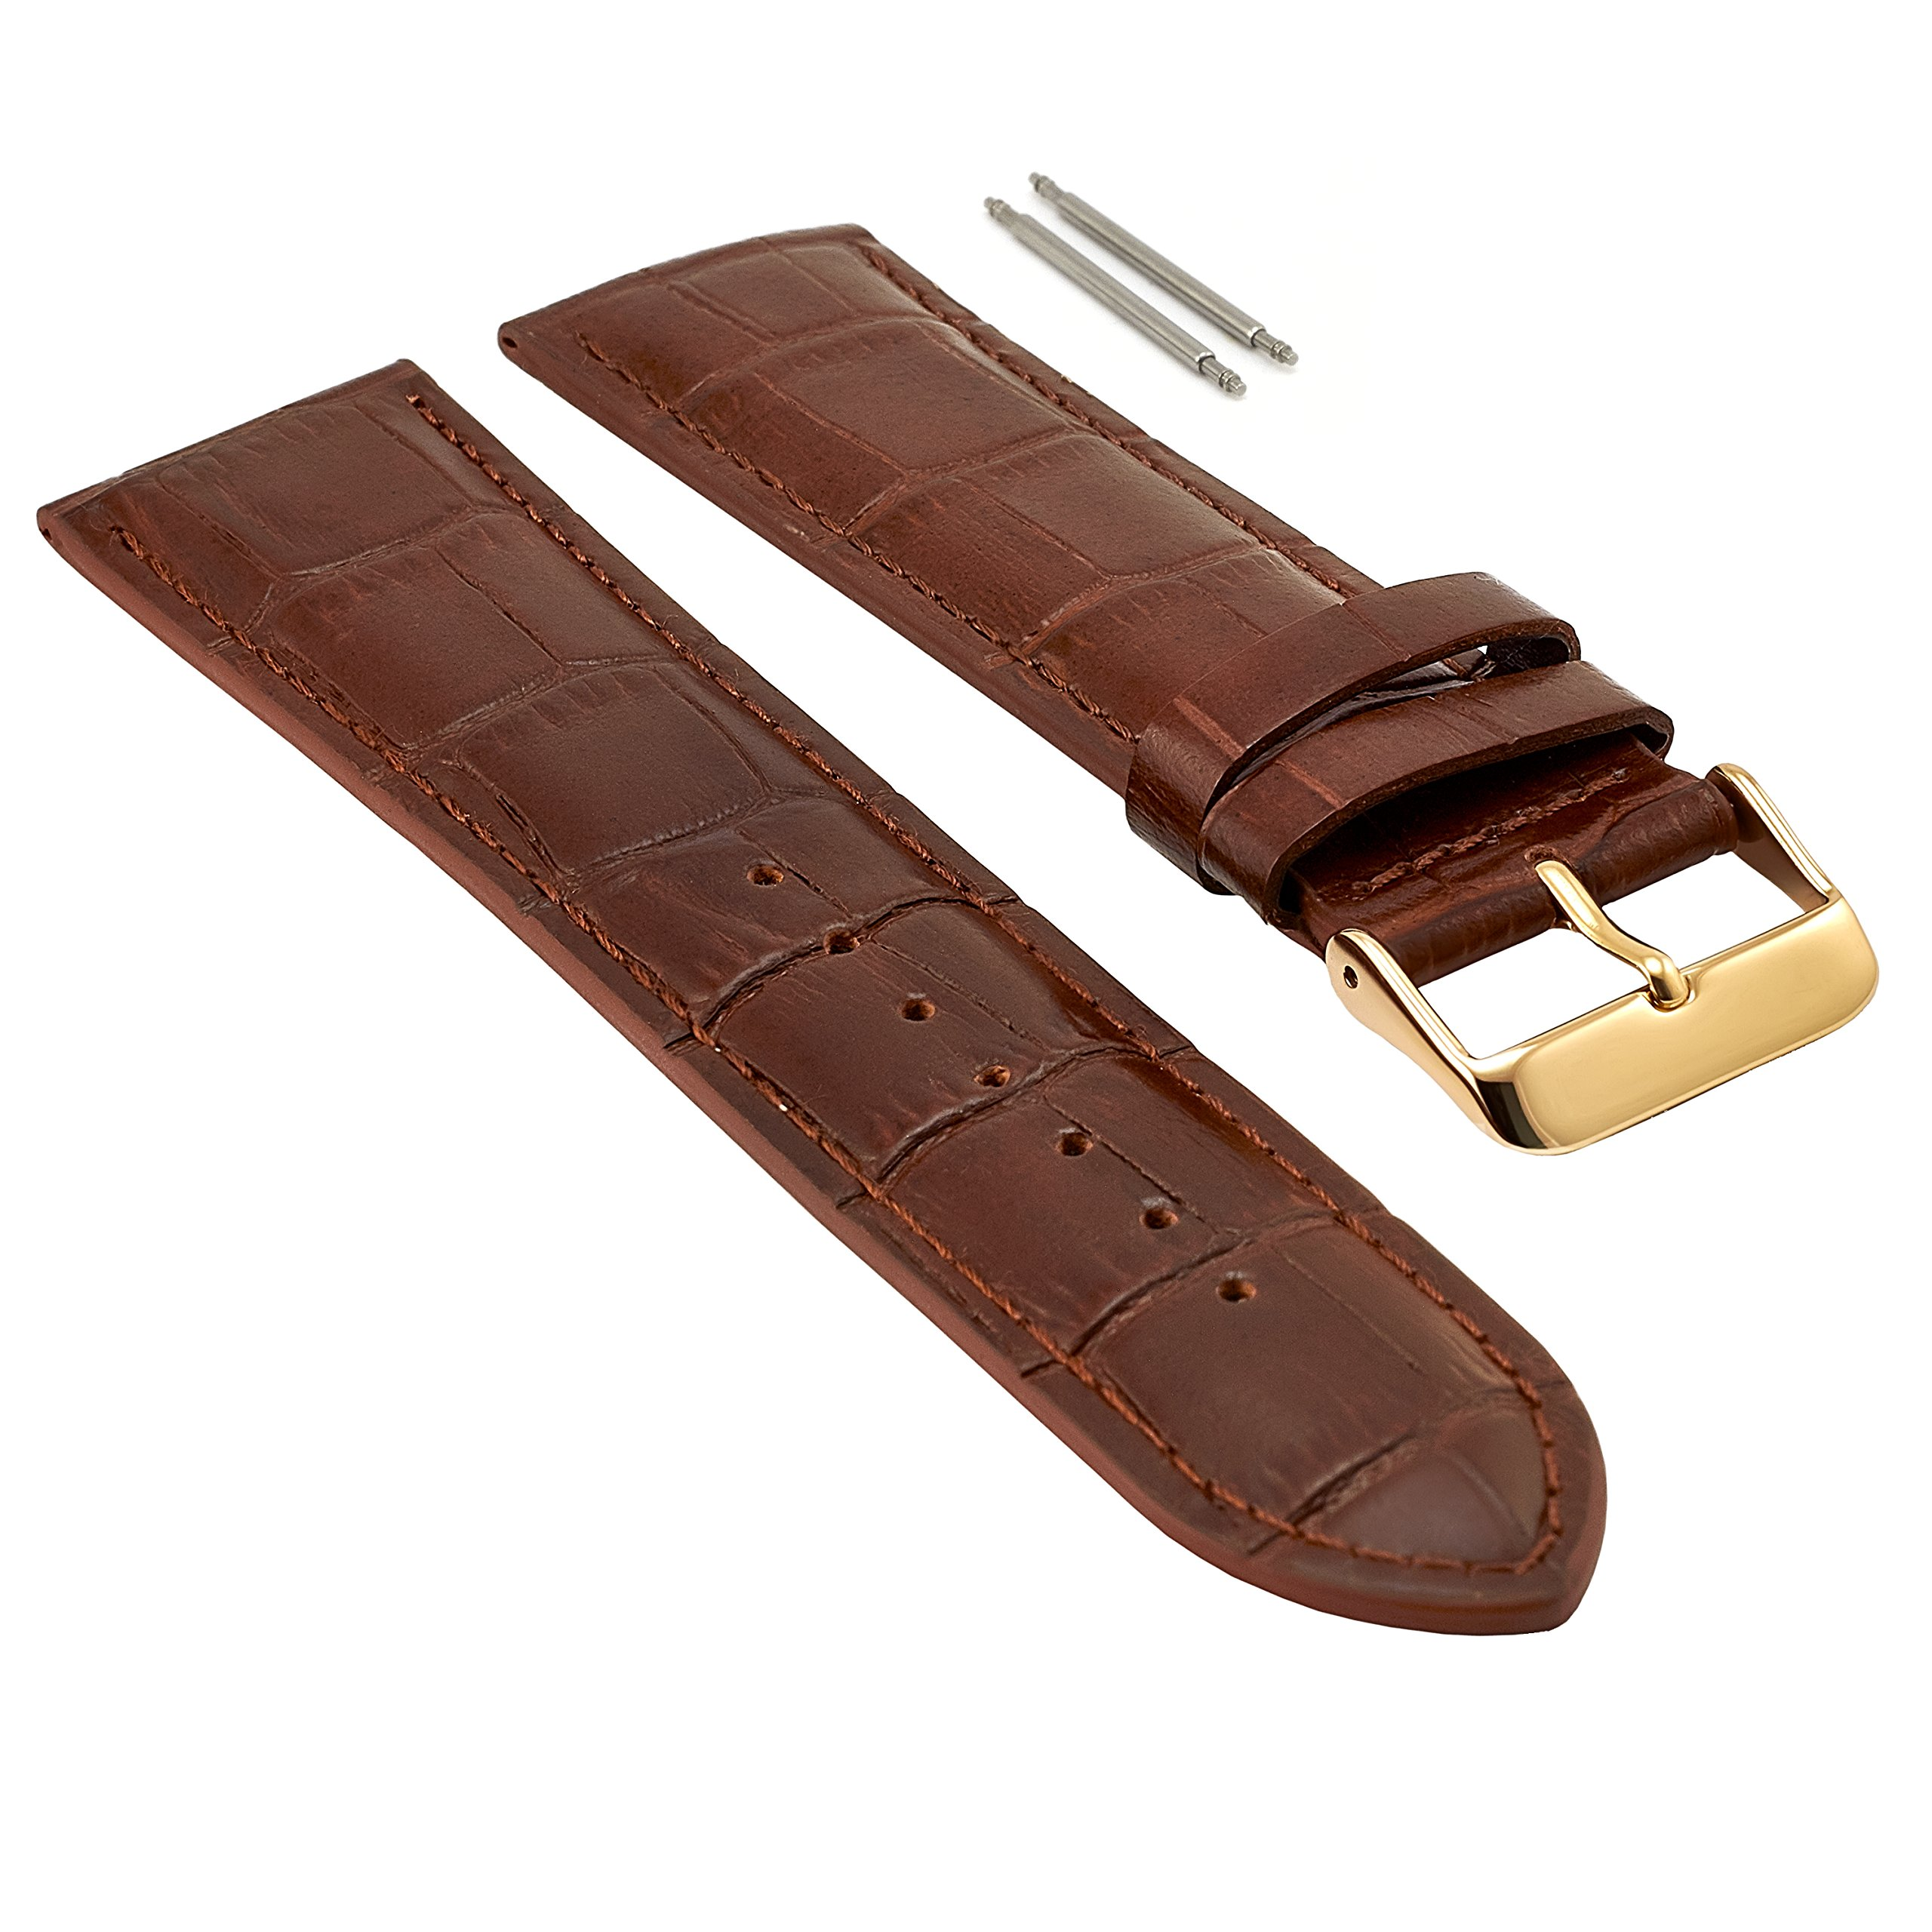 Mens Brown Genuine Leather Watch Strap - Size 24MM Gold Buckle, Extra Long XL Length, Crocodile Print Leather with 2 Free Pins